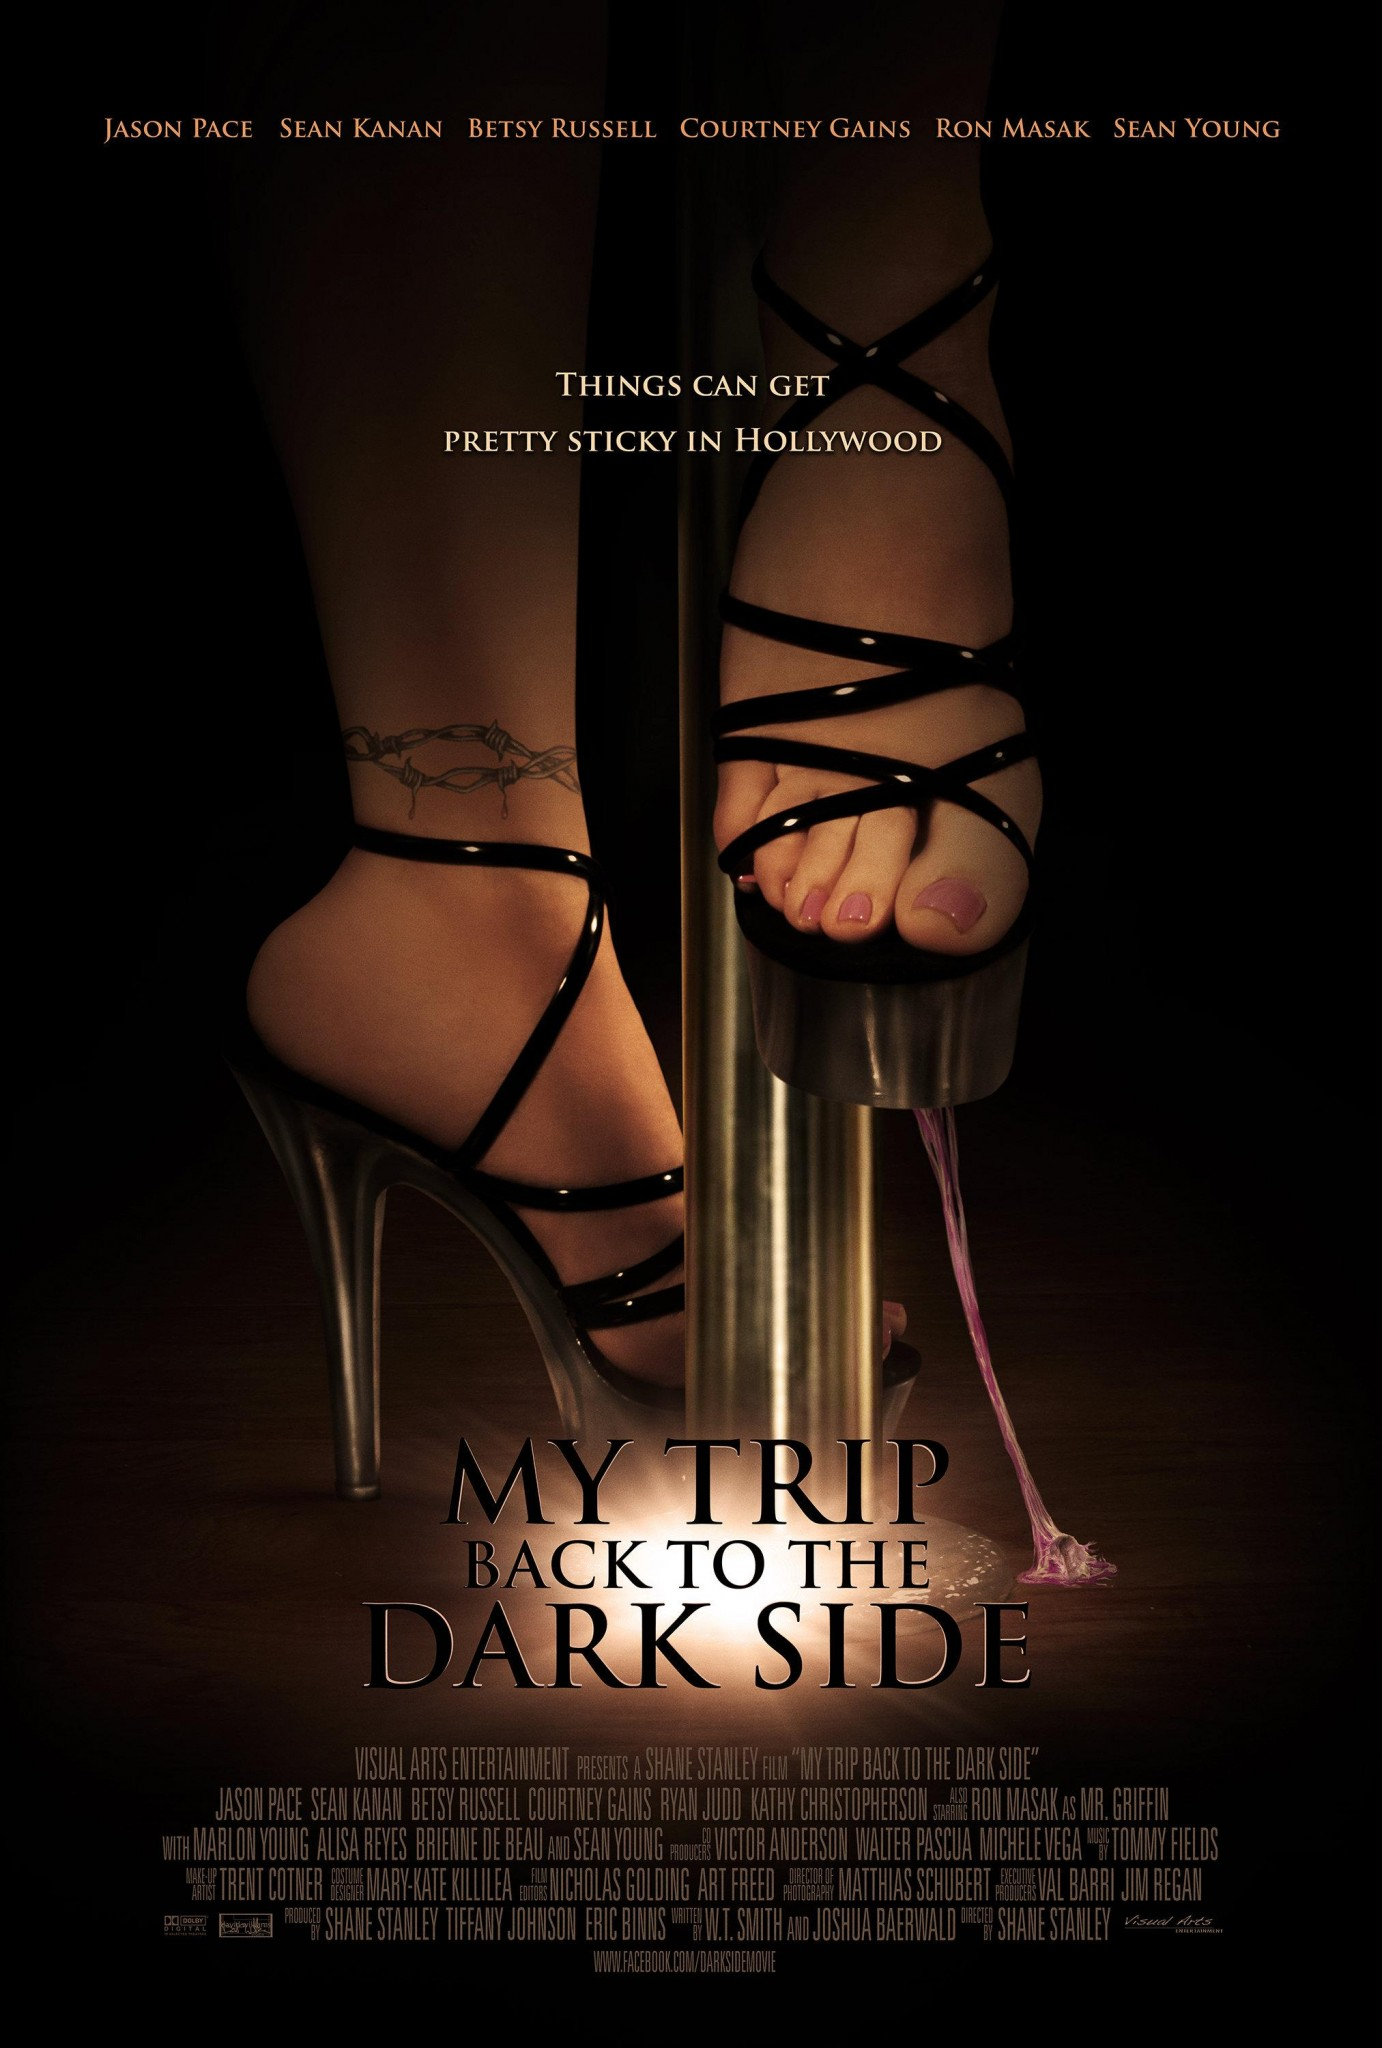 My Trip Back To The Dark Side (2014)